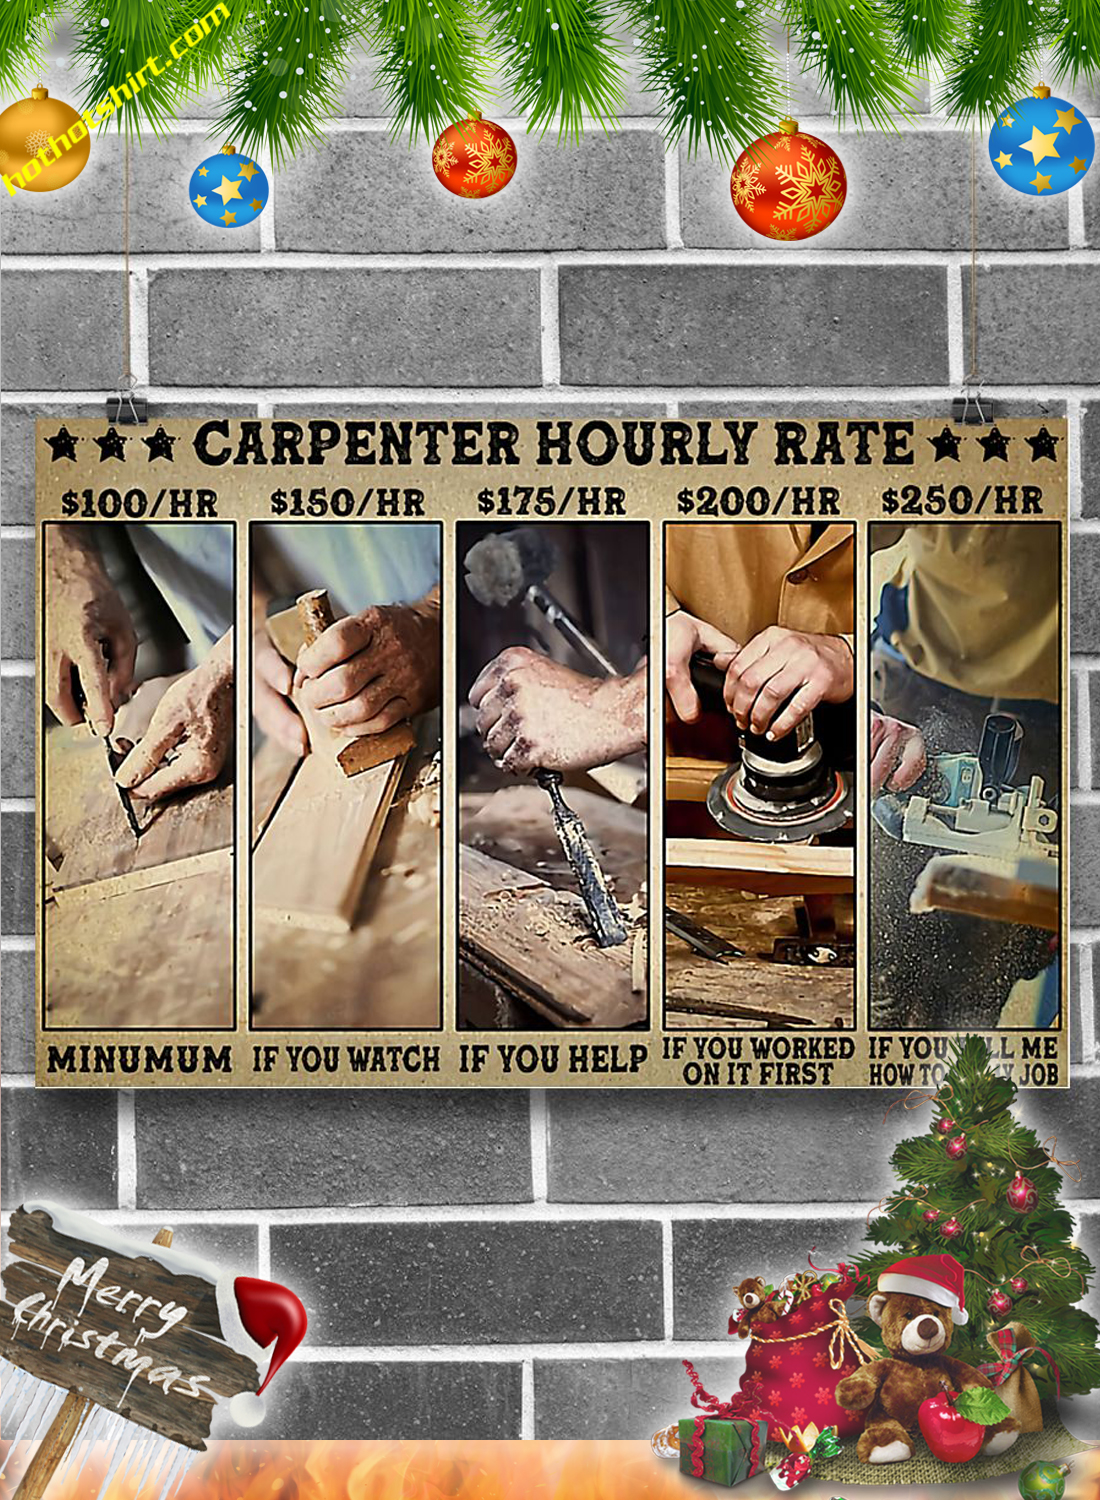 Carpenter hourly rate poster 1